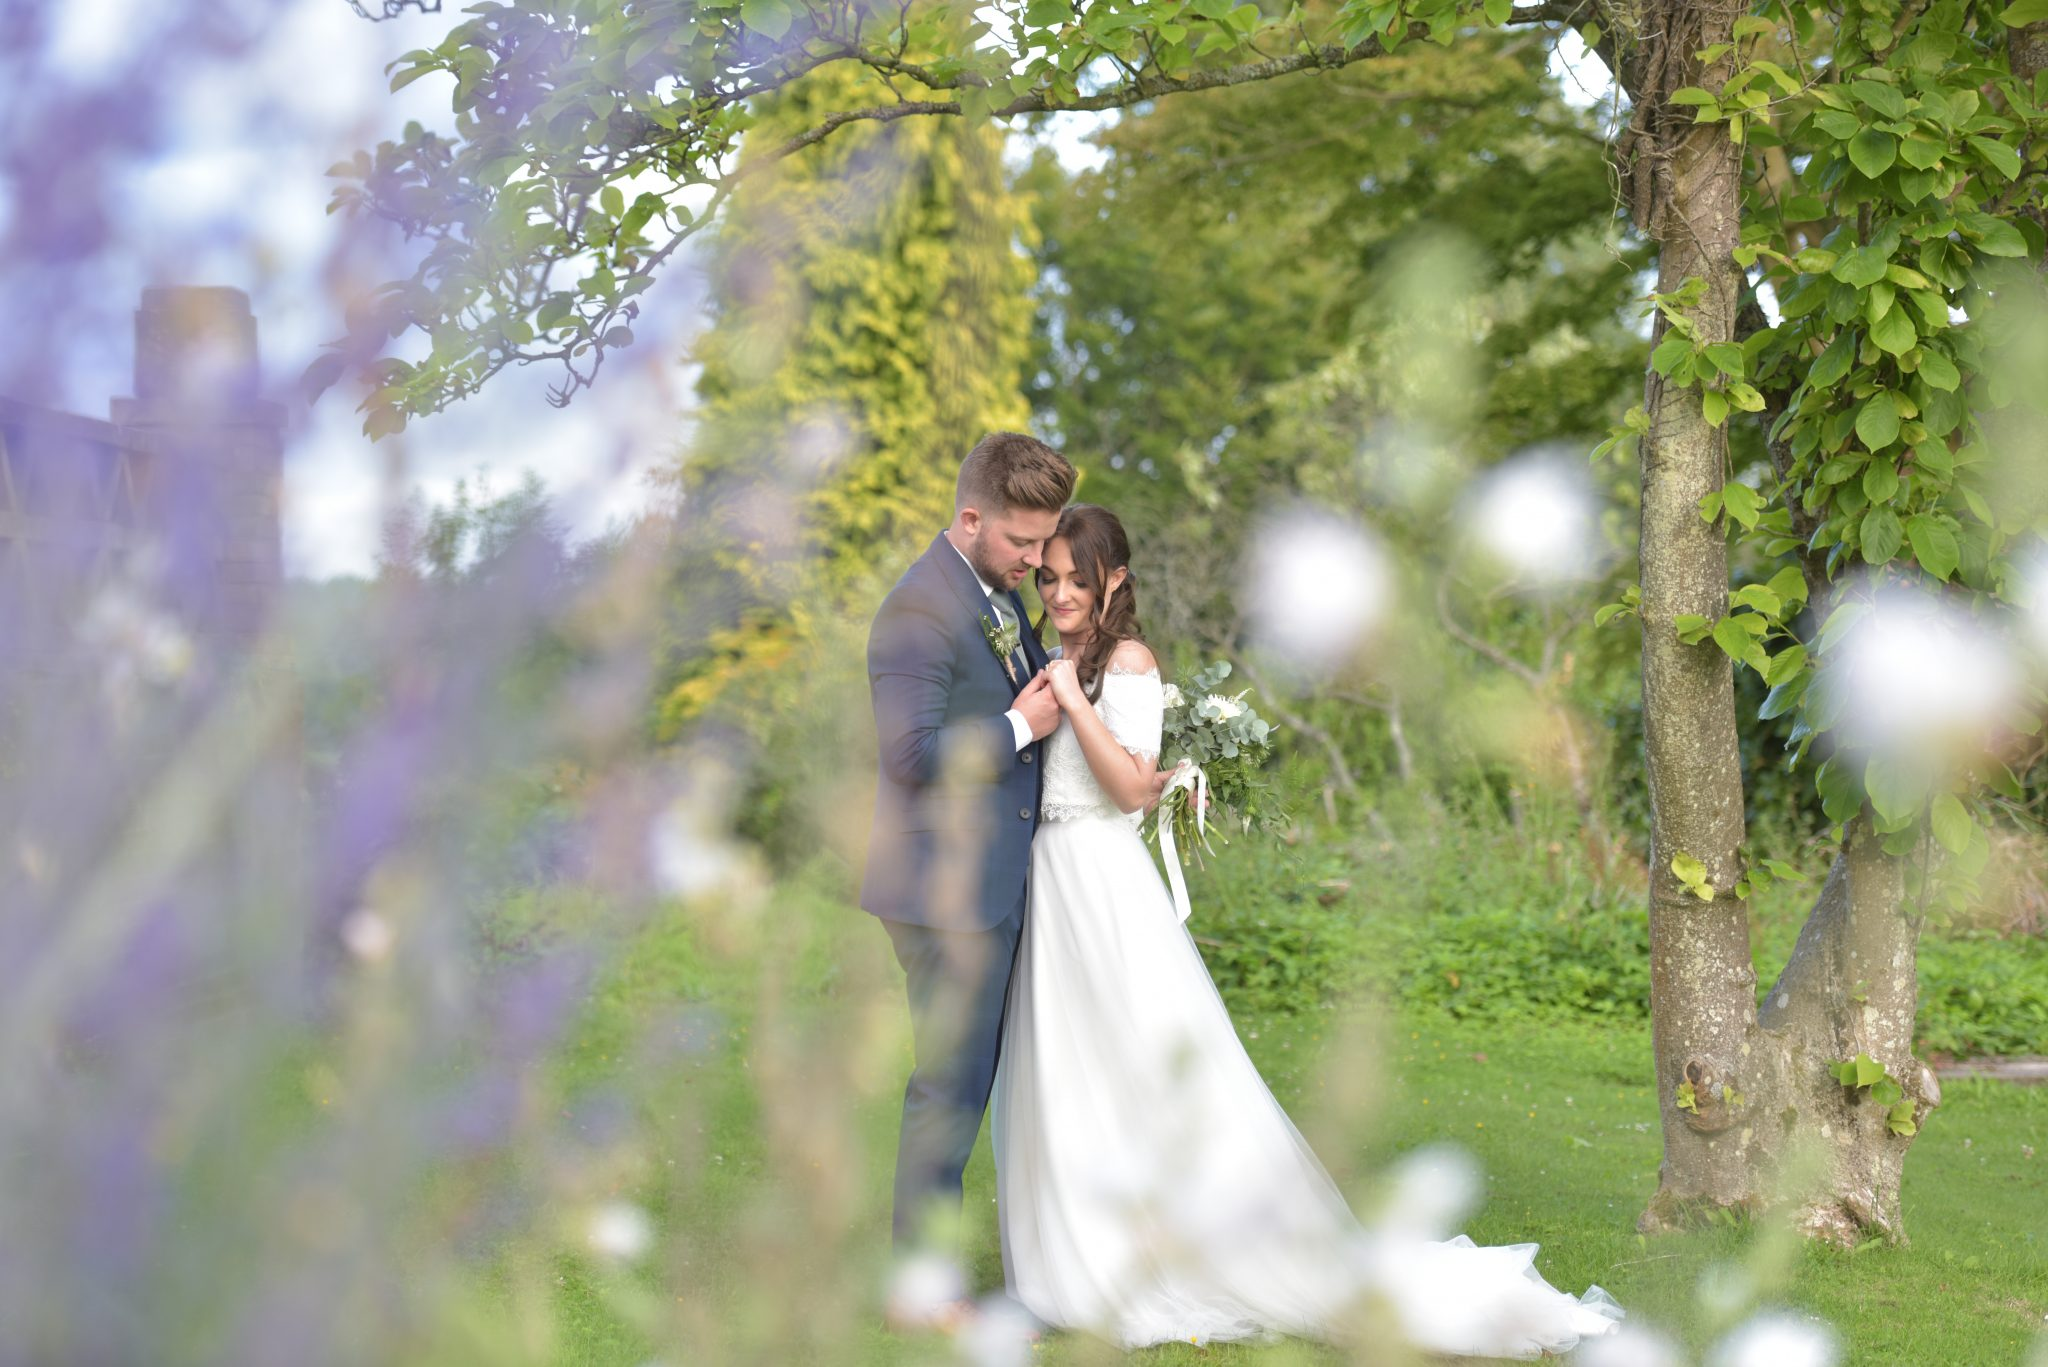 newliwed couple at buxted park